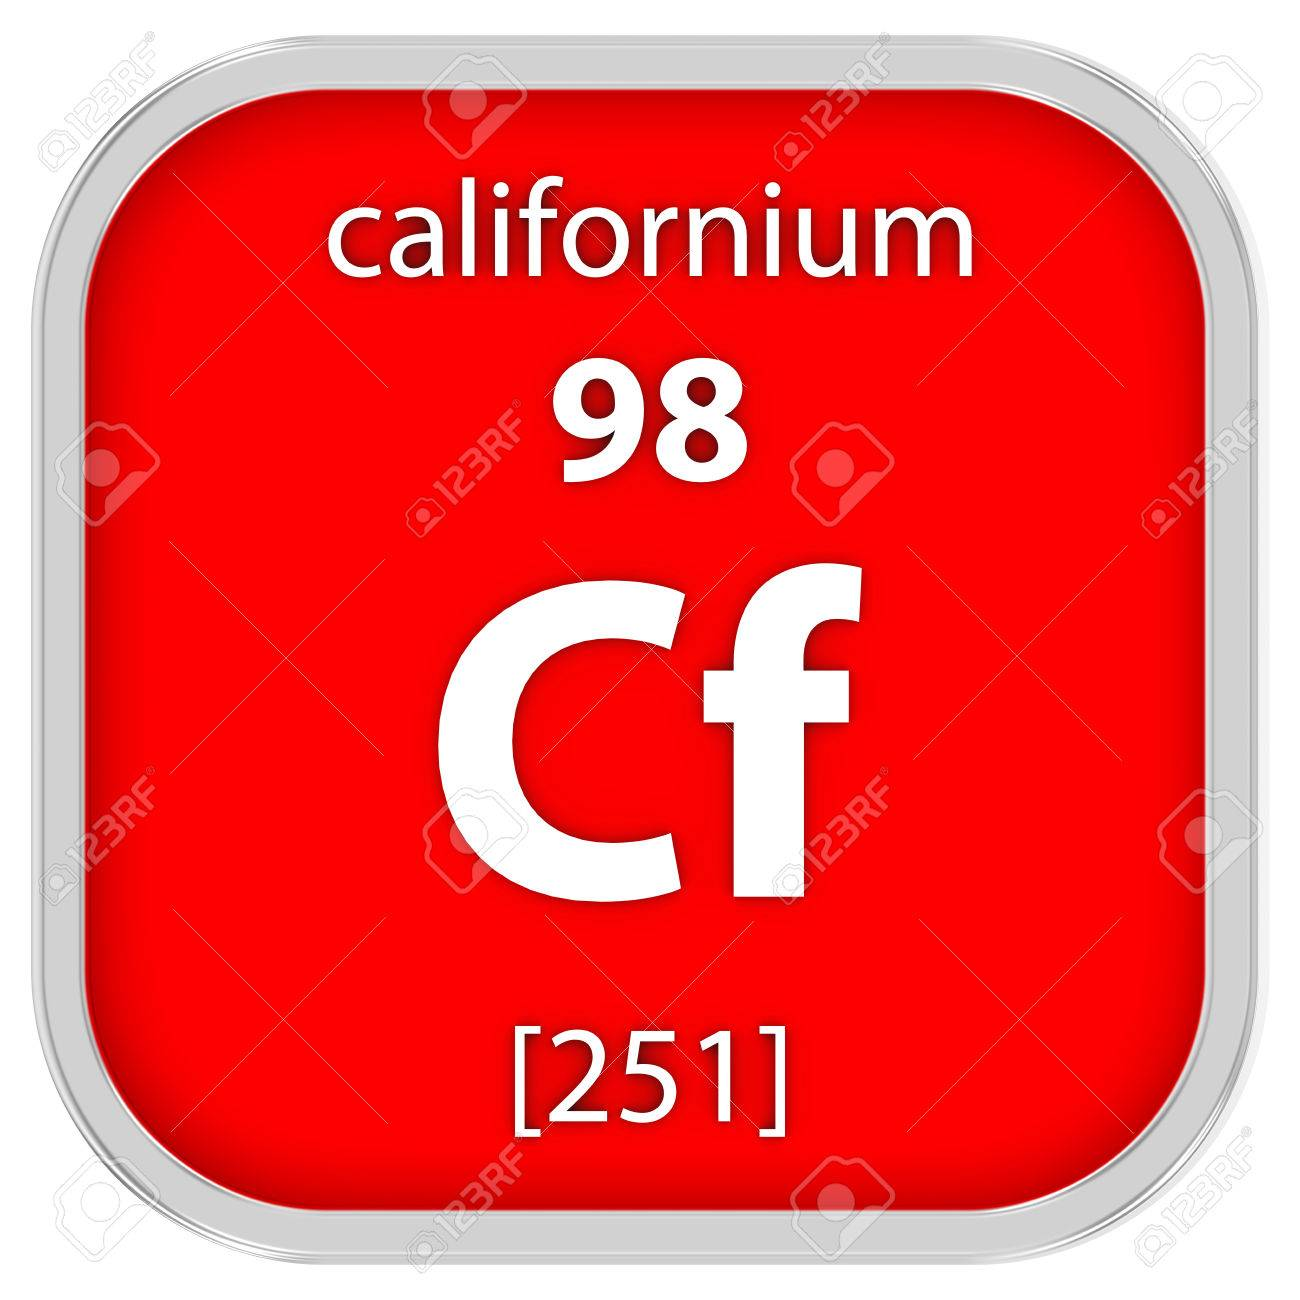 Californium stock photos pictures royalty free californium californium material on the periodic table stock photo gamestrikefo Images